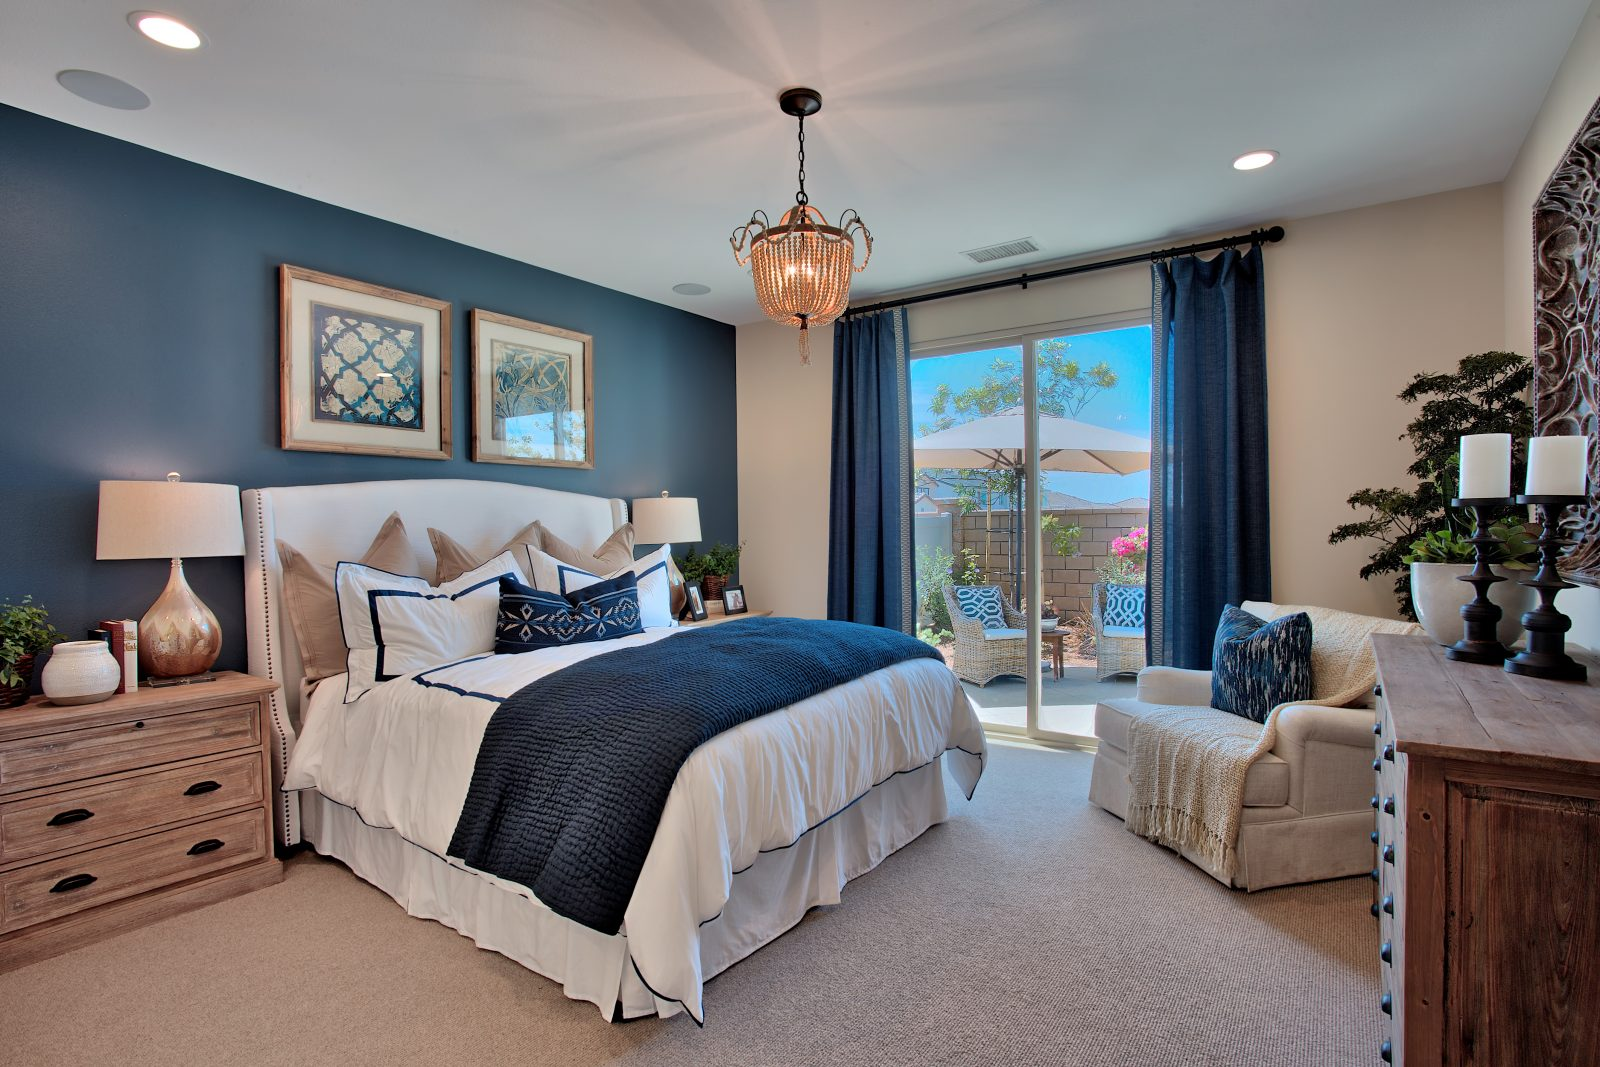 Bedroom | Nectar at Spencers Crossing in Riverside, CA | Brookfield Residential